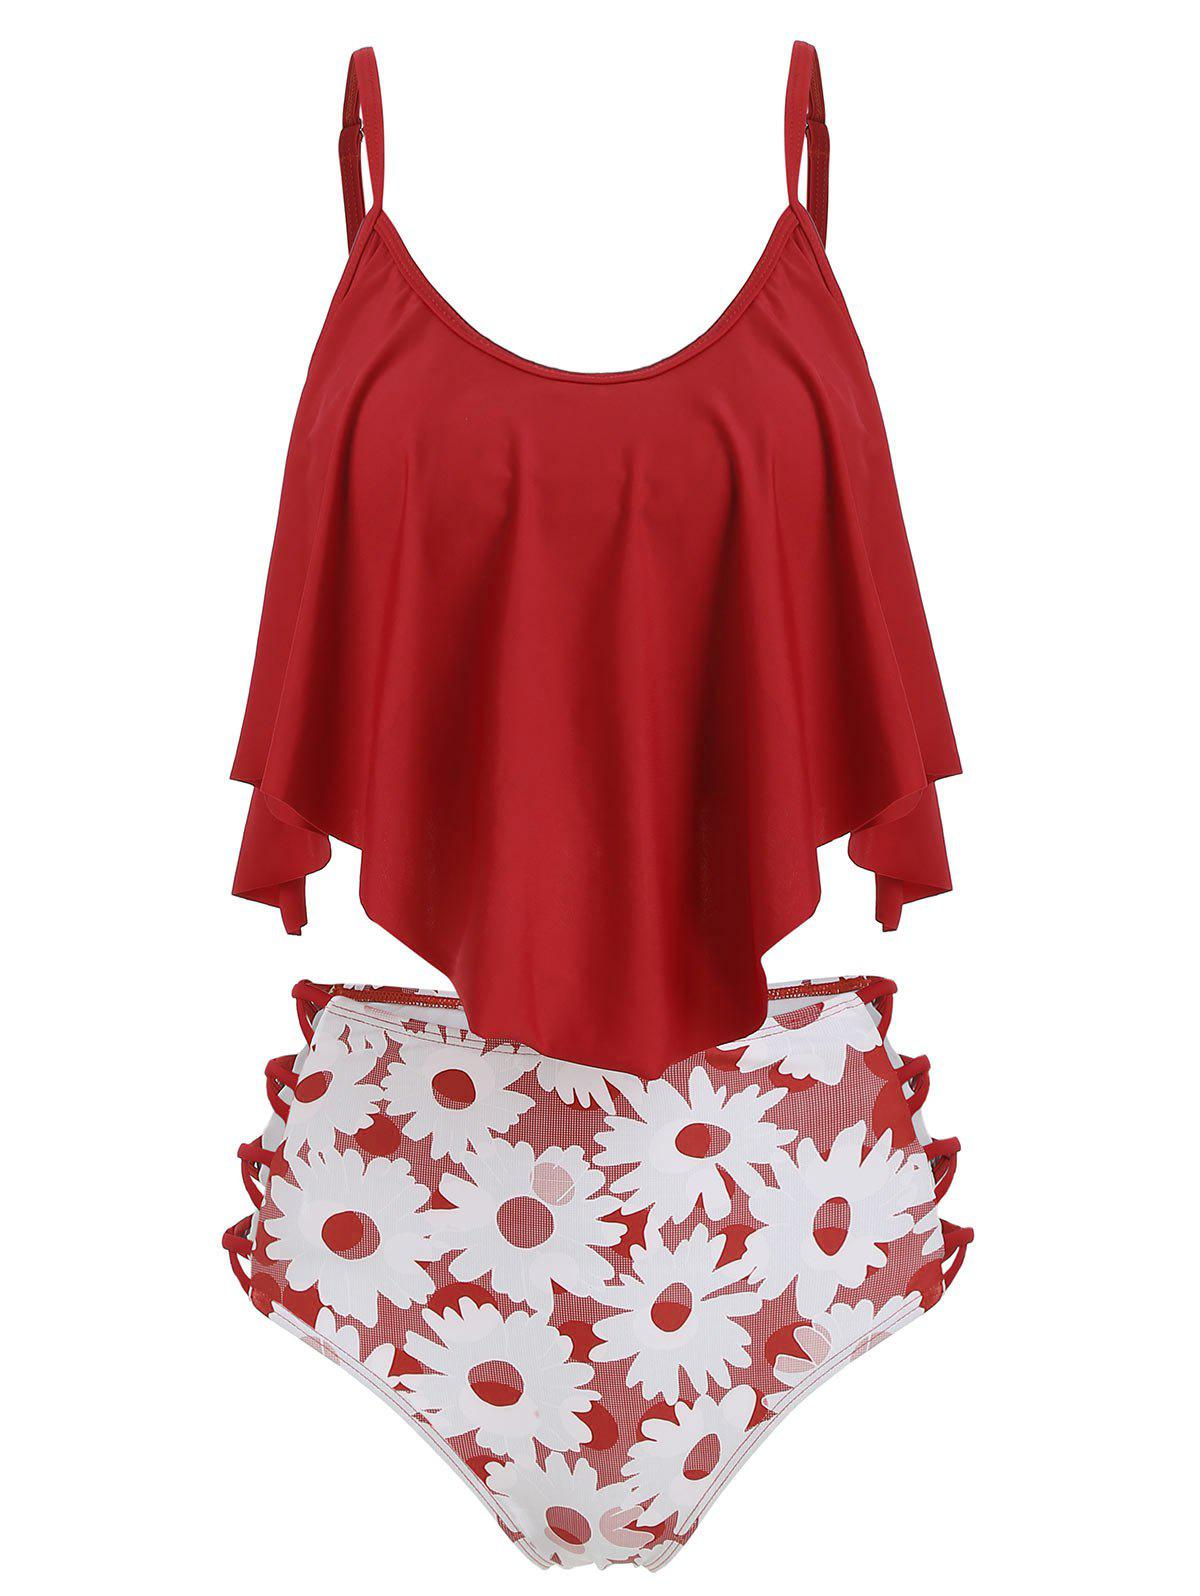 Fancy Flounce Floral Lattice High Waisted Tankini Swimsuit